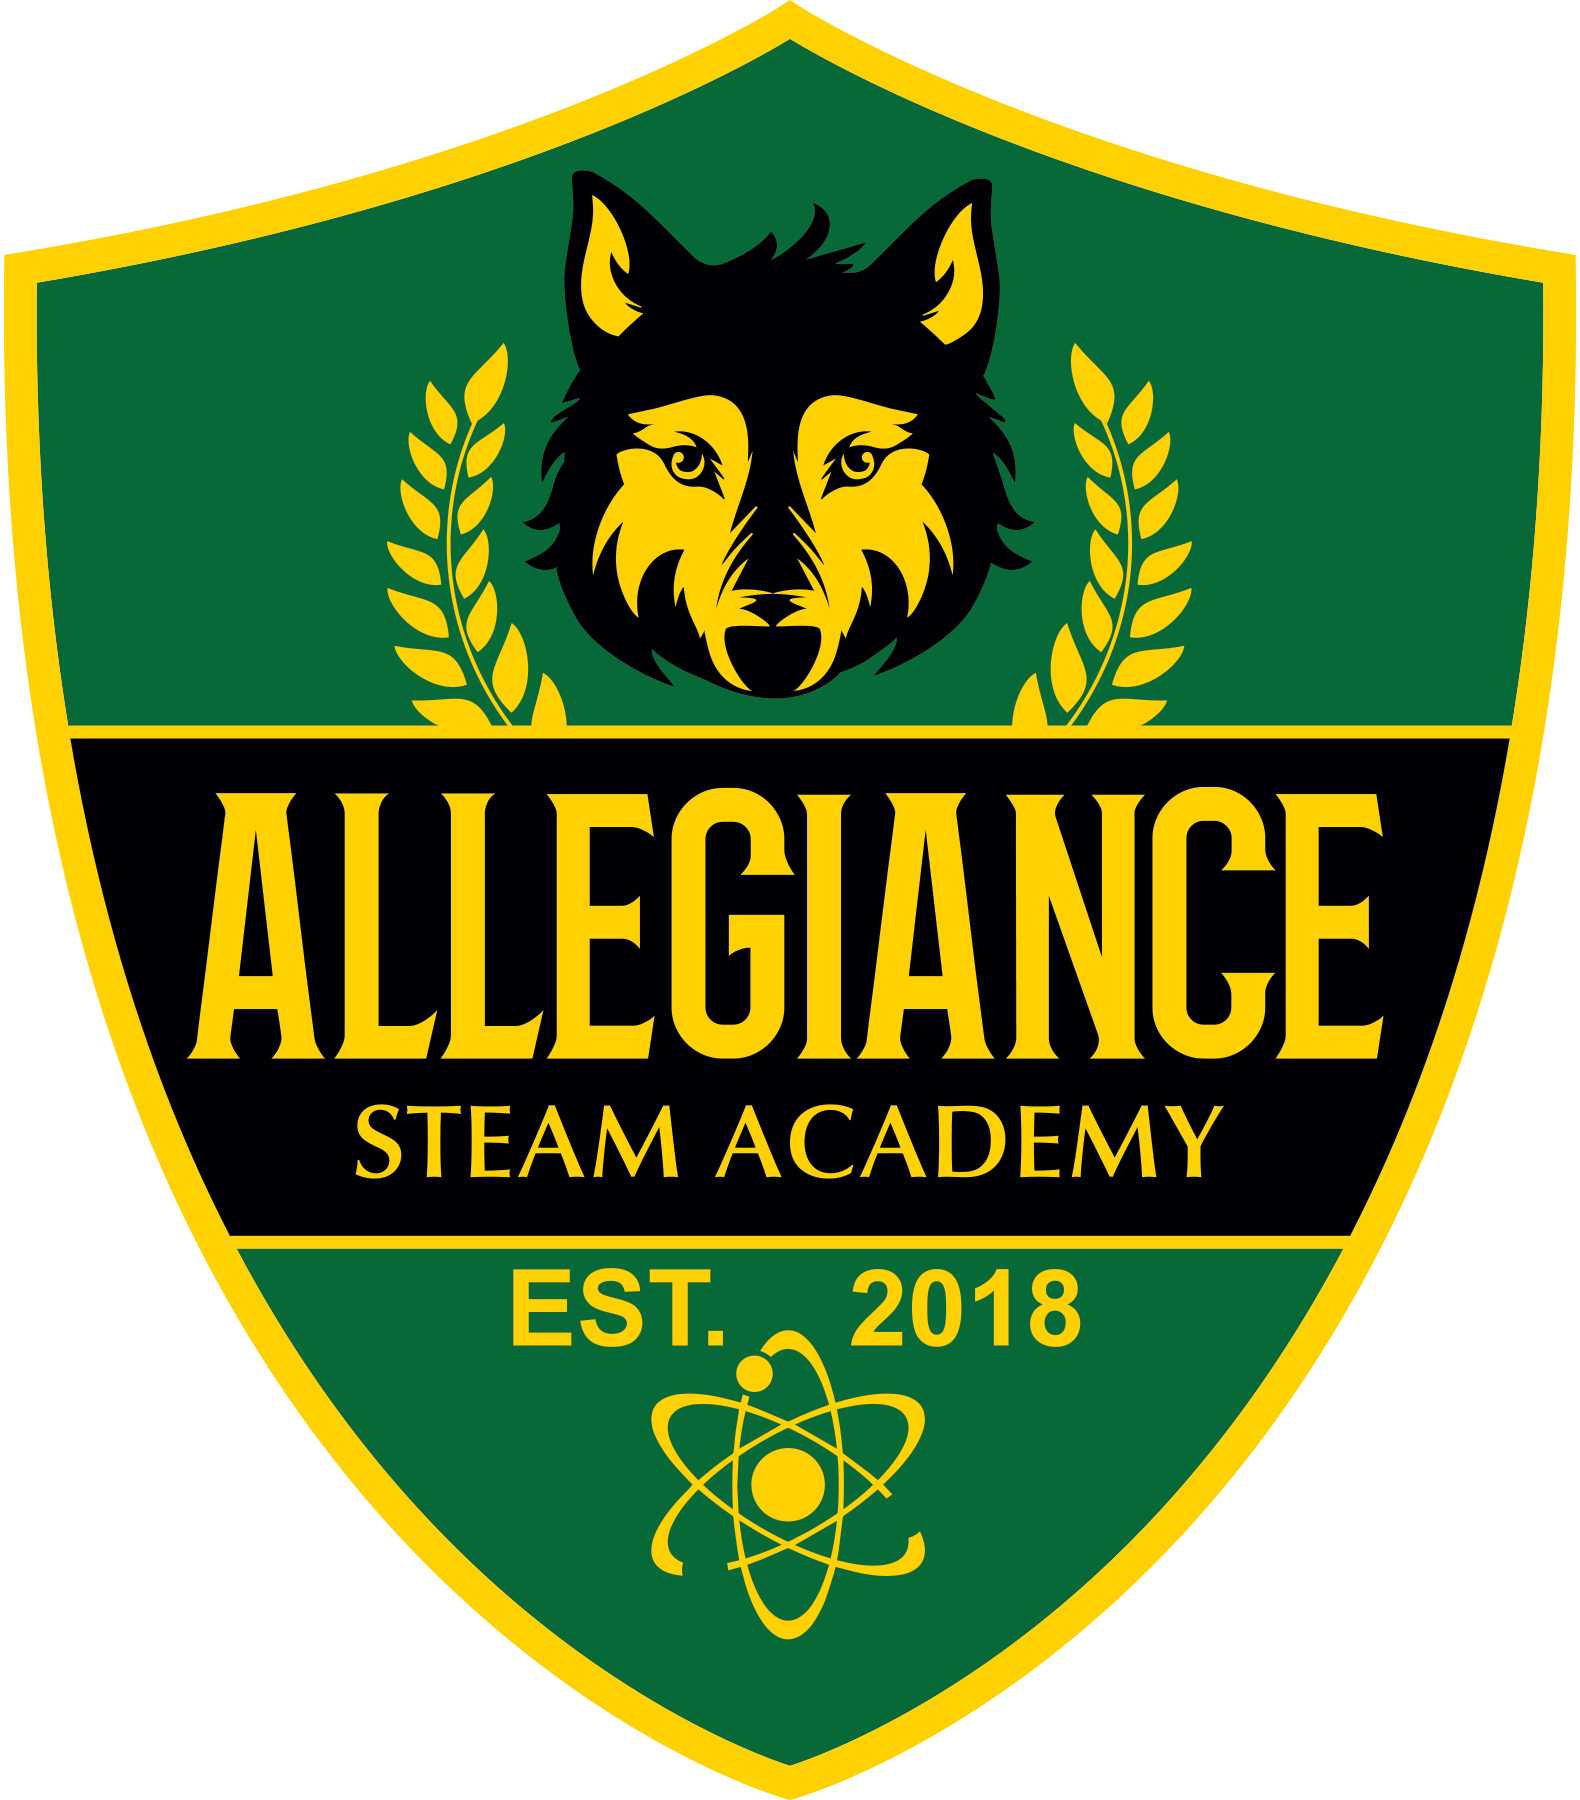 Allegiance STEAM Academy